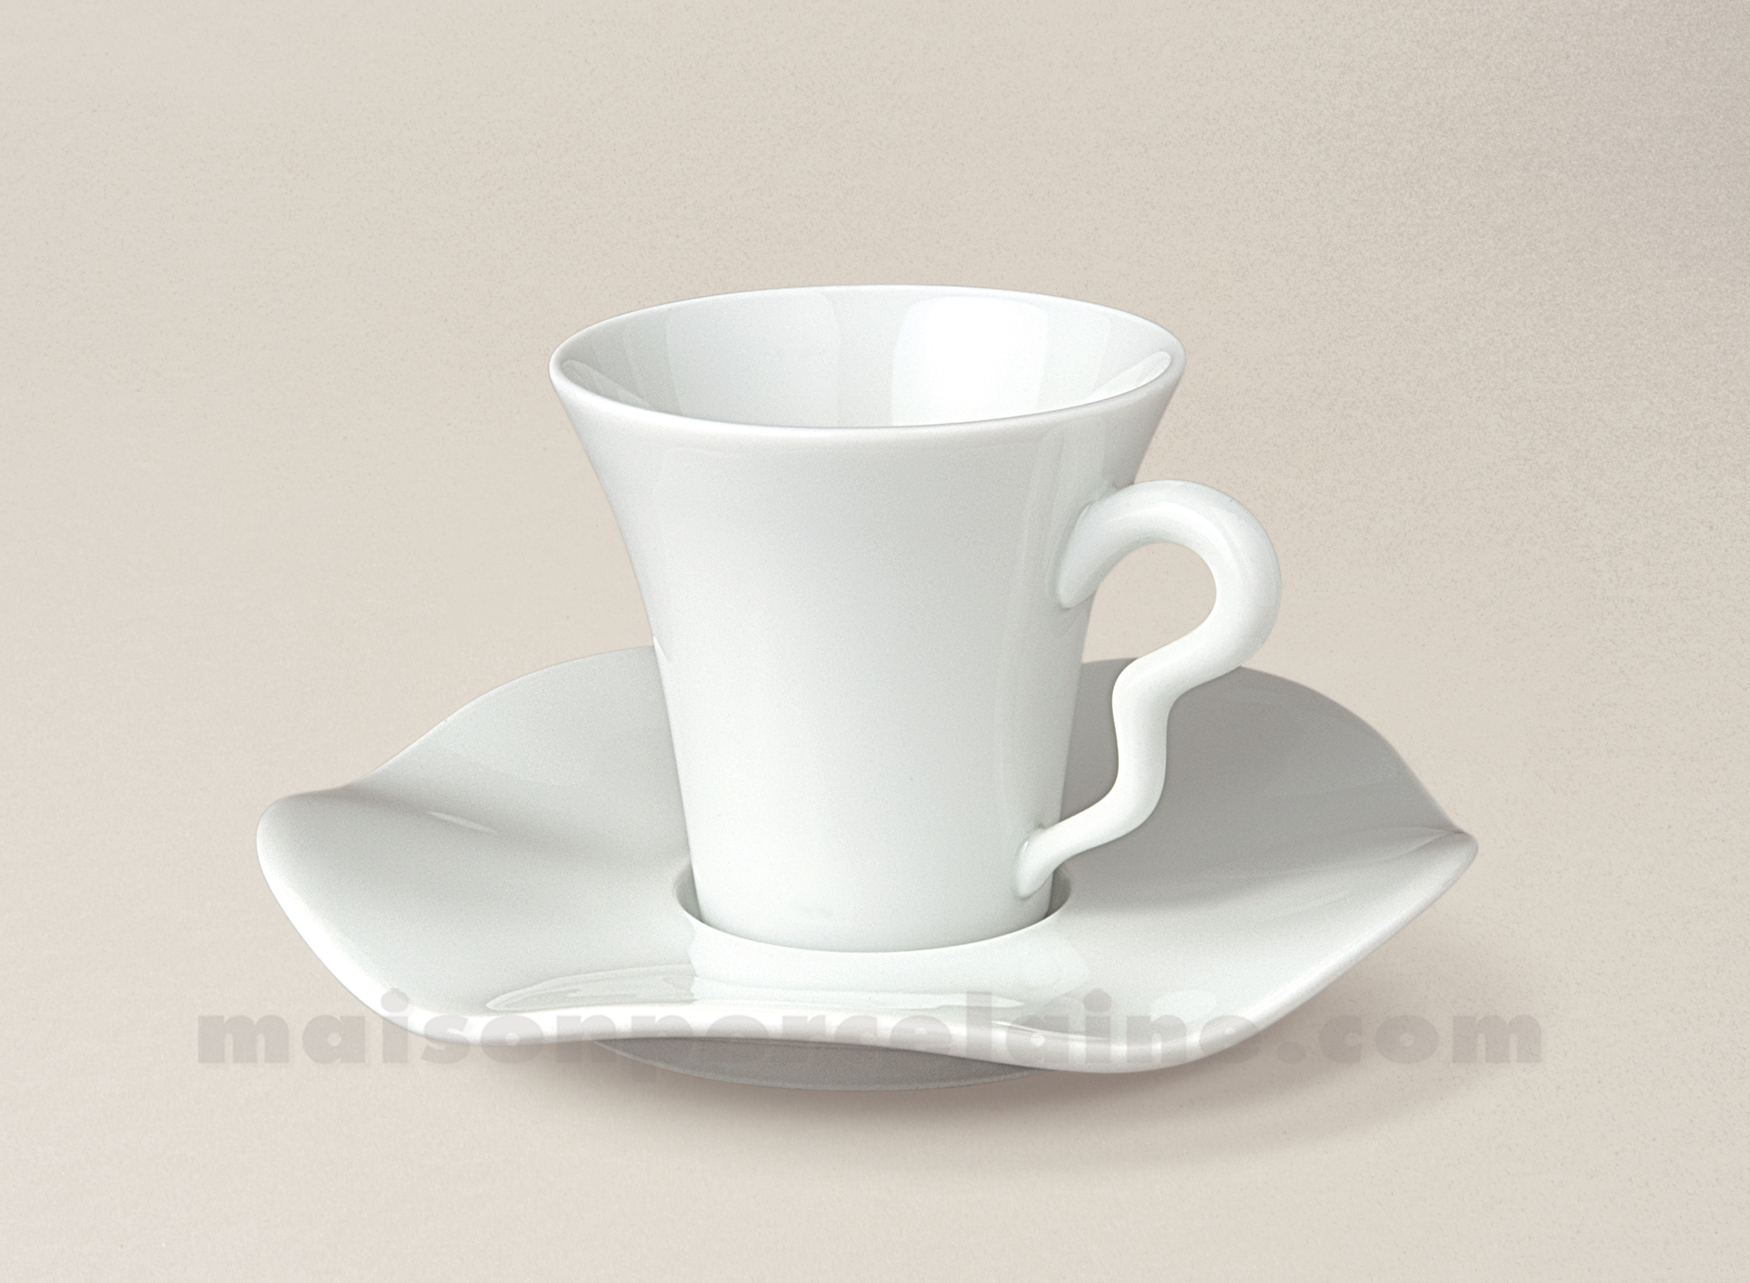 tasse cafe soucoupe limoges porcelaine blanche gala 10cl maison de la porcelaine. Black Bedroom Furniture Sets. Home Design Ideas